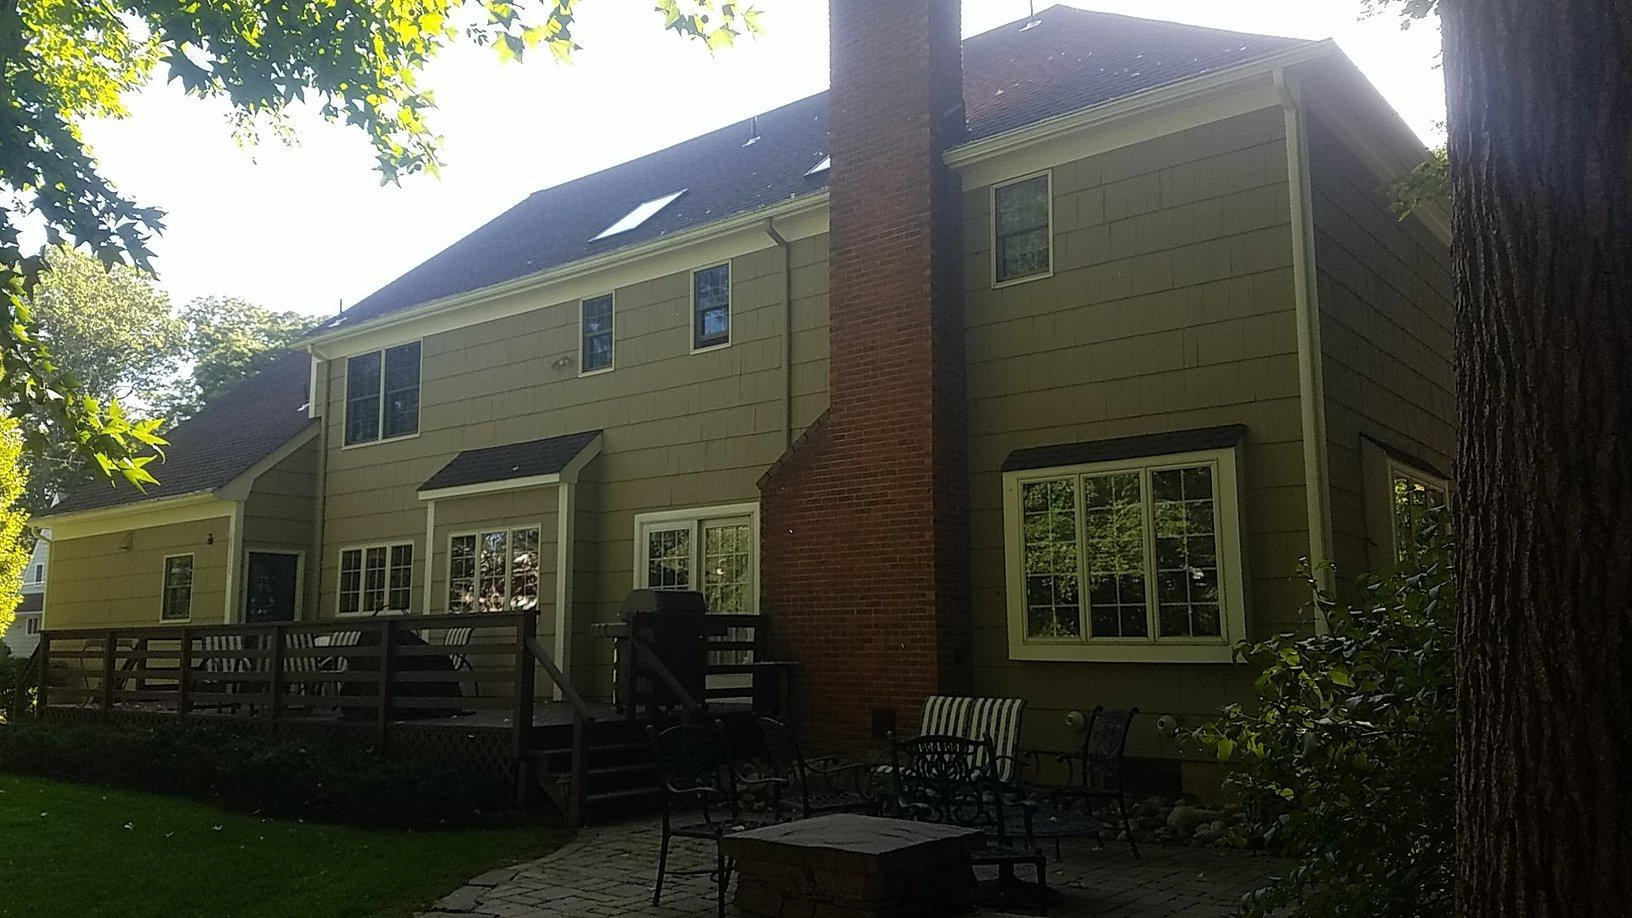 View of Back of Home